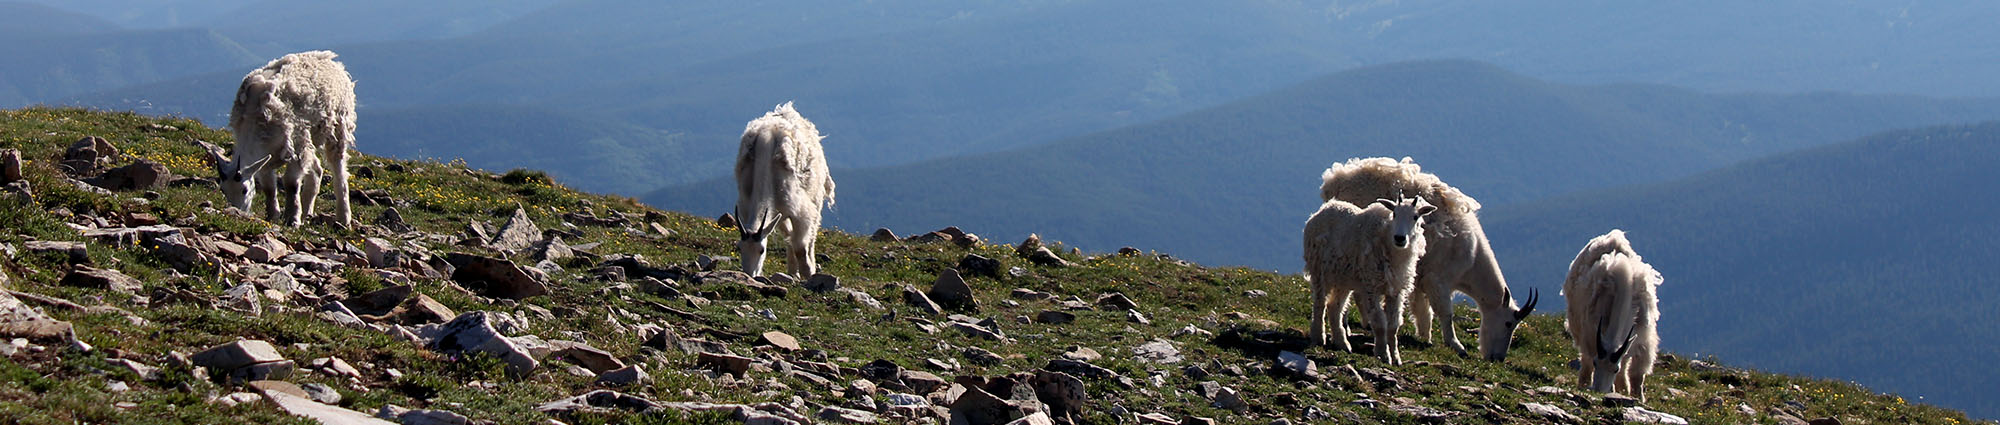 Four white mountain goats graze near the rock-strewn summit of Quandary Peak in Colorado – the highest peak in the Tenmile Range in the Rocky Mountains.  The mountain range in the background of the photo looks like an ocean of blue waves.